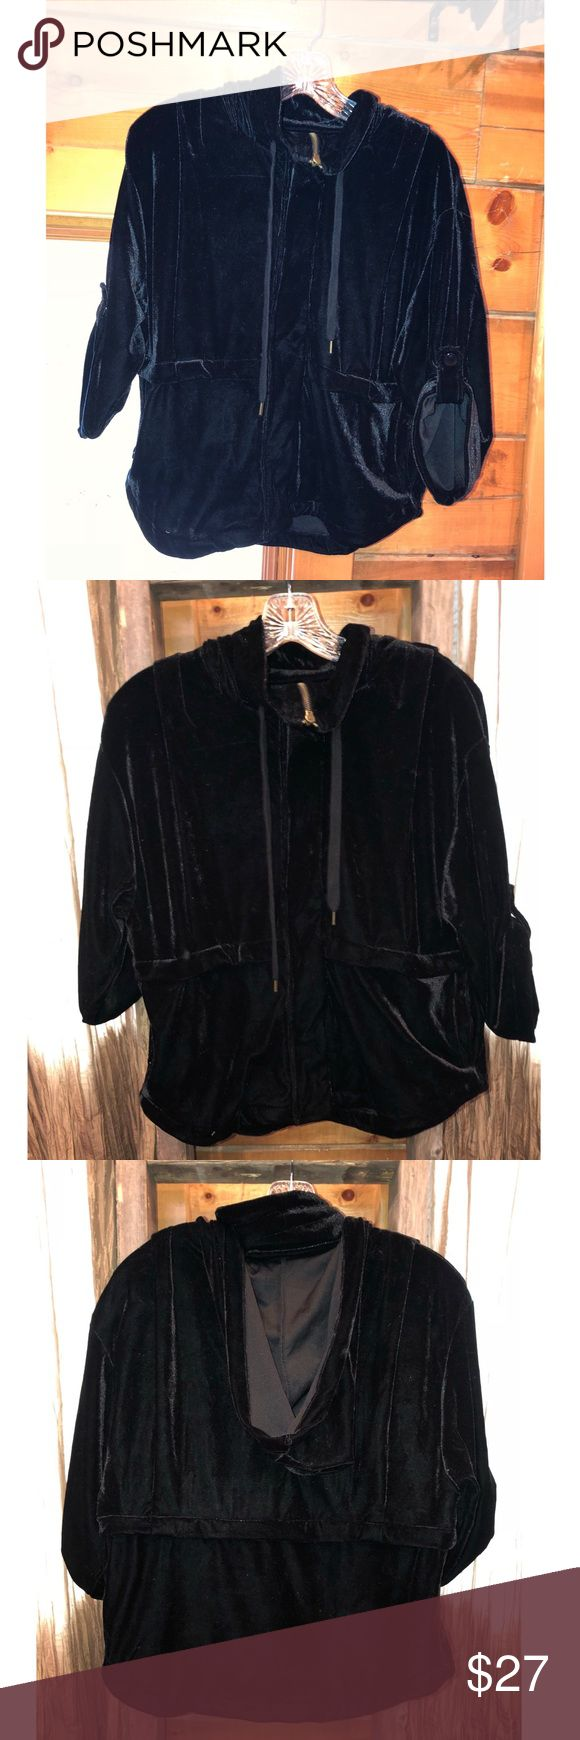 Black velvet 3/4 sleeve zip up hoody Dress it up | Dress it down Excellent condition worn one time & adorable on freebird Jackets & Coats